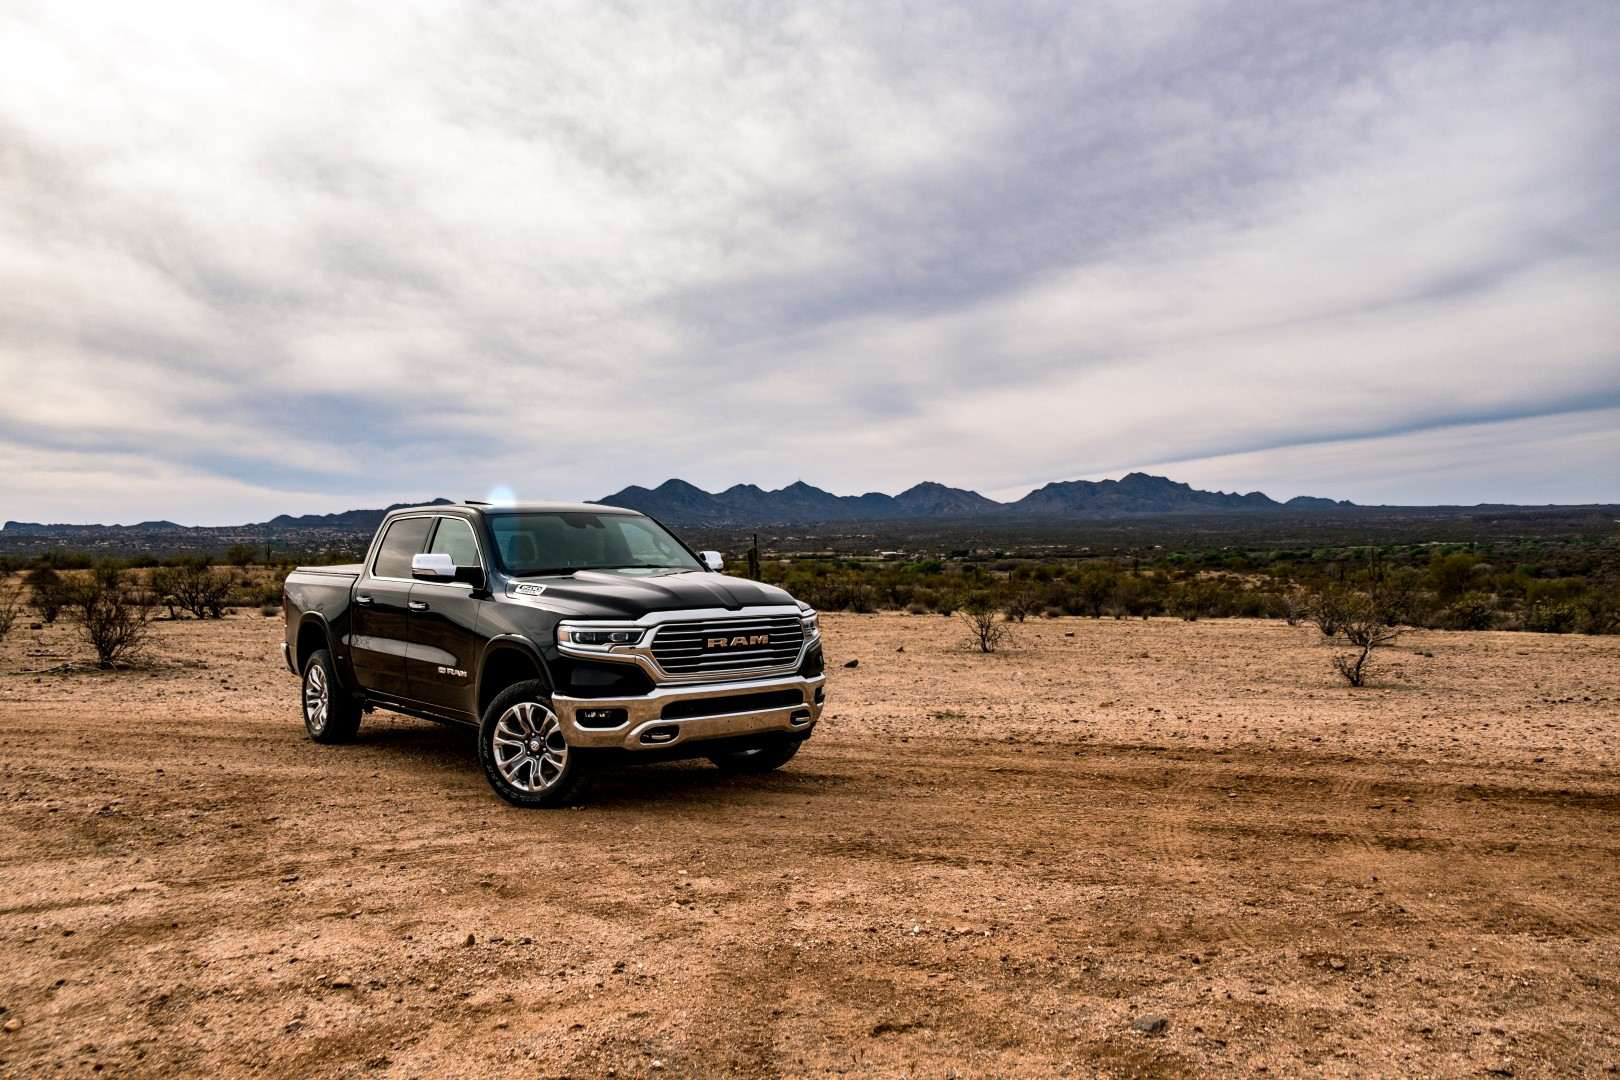 2019 Ram 1500 Has New Looks Inside And Out